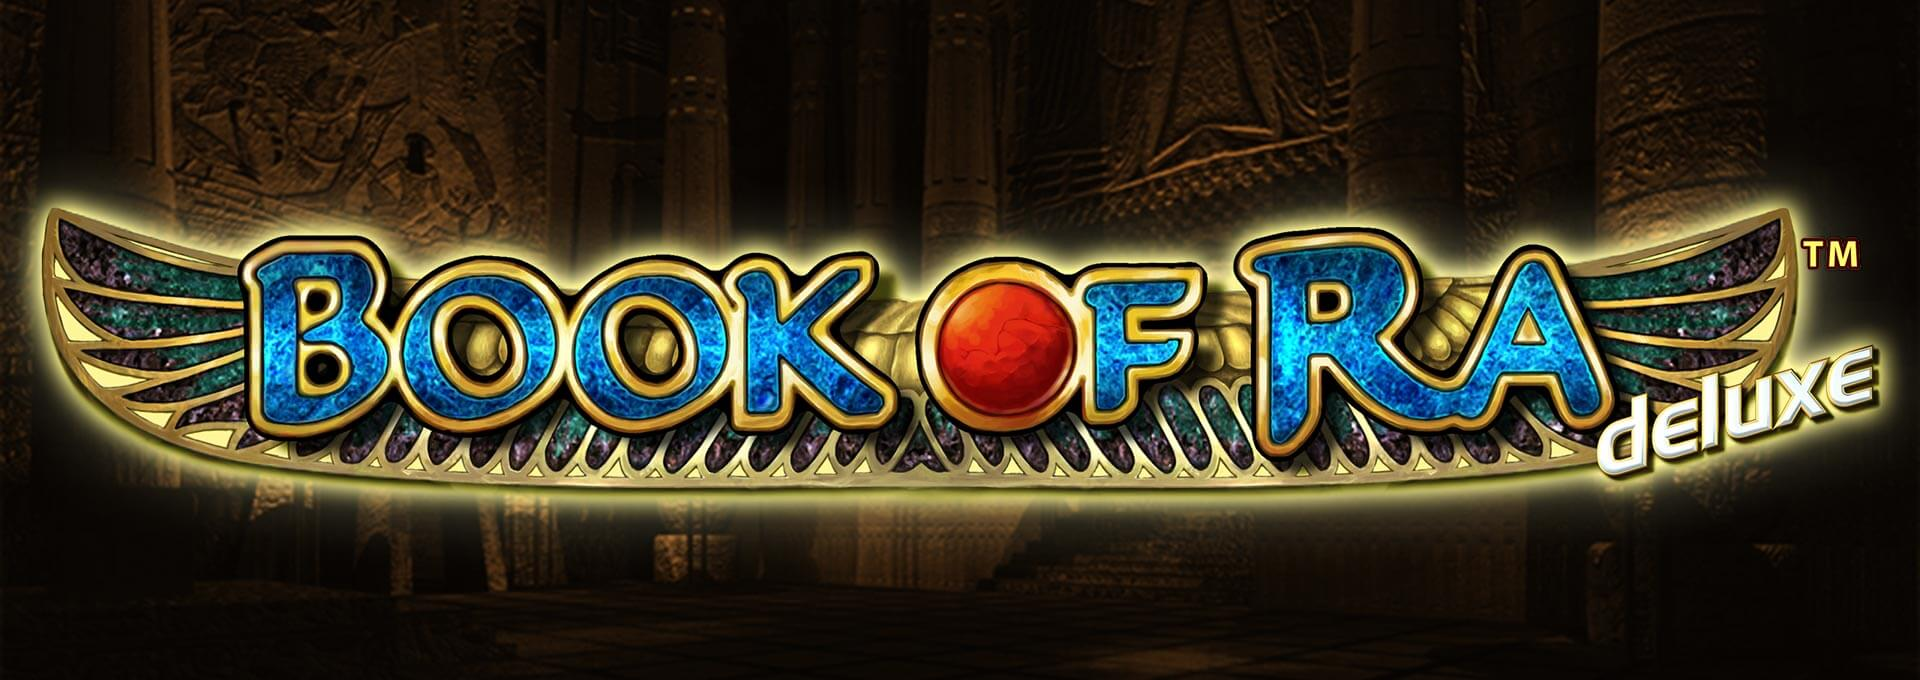 europa casino online slots book of ra